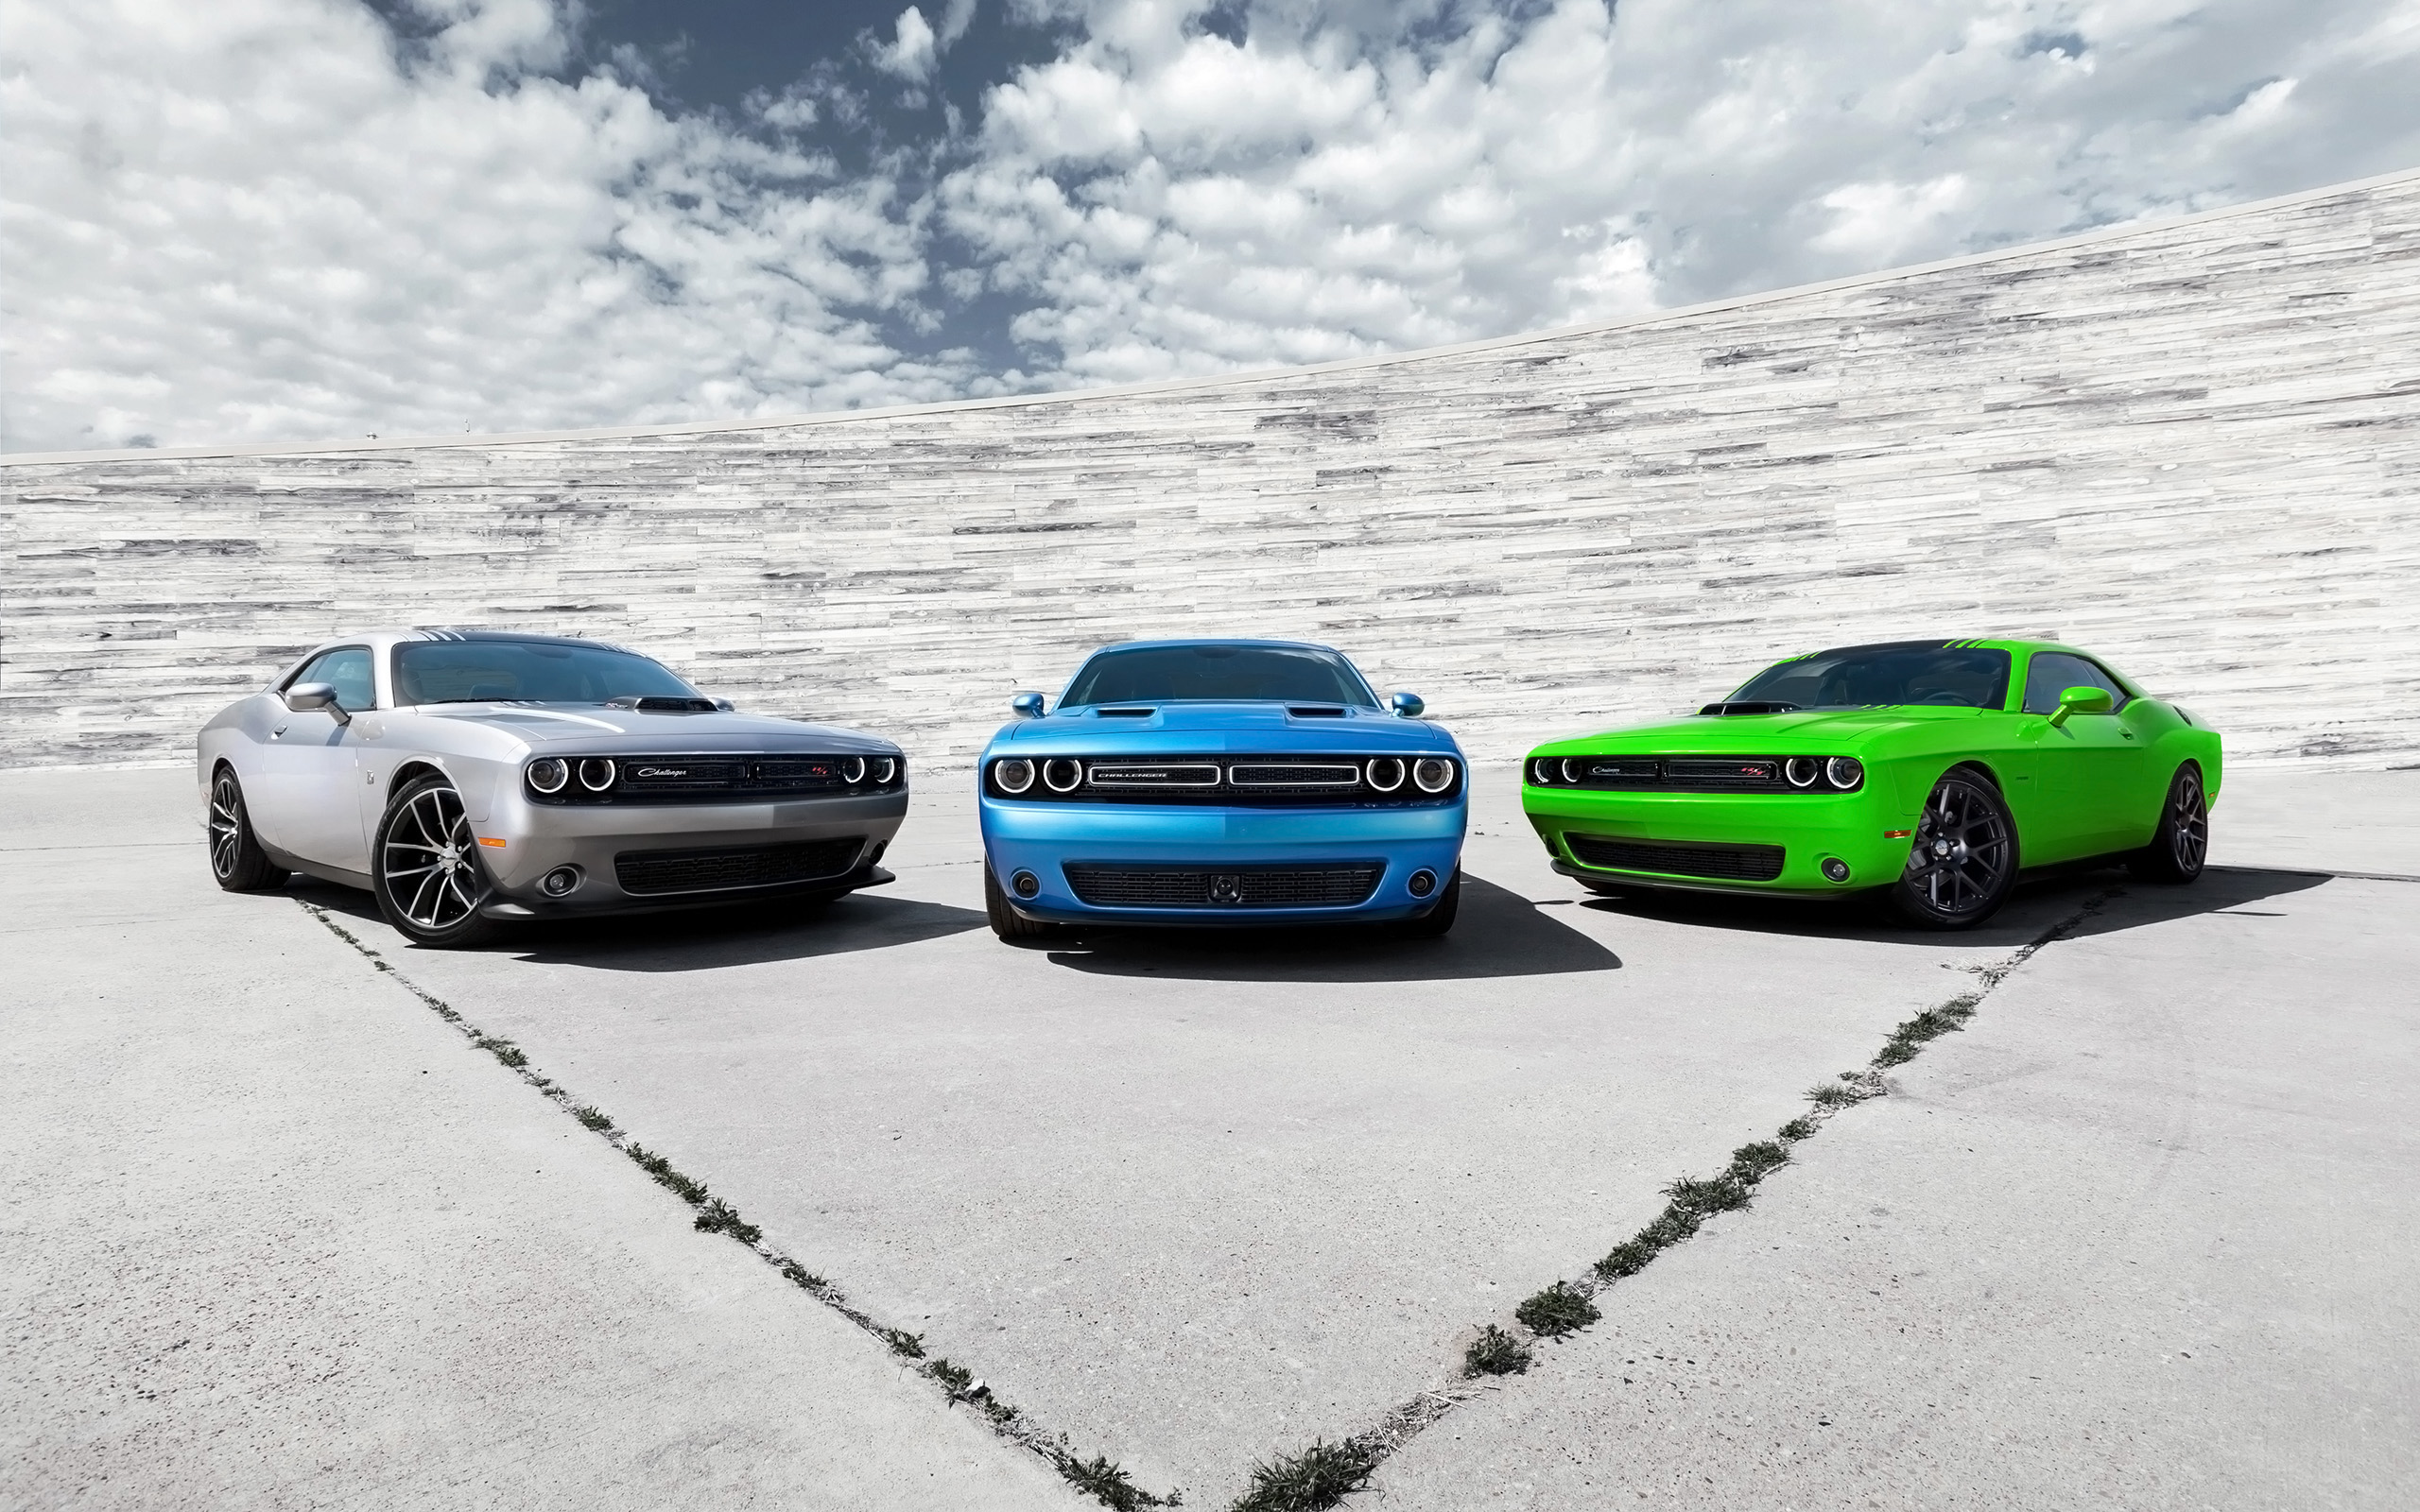 2015 Dodge Challenger Cars Wallpapers HD Wallpapers 2560x1600